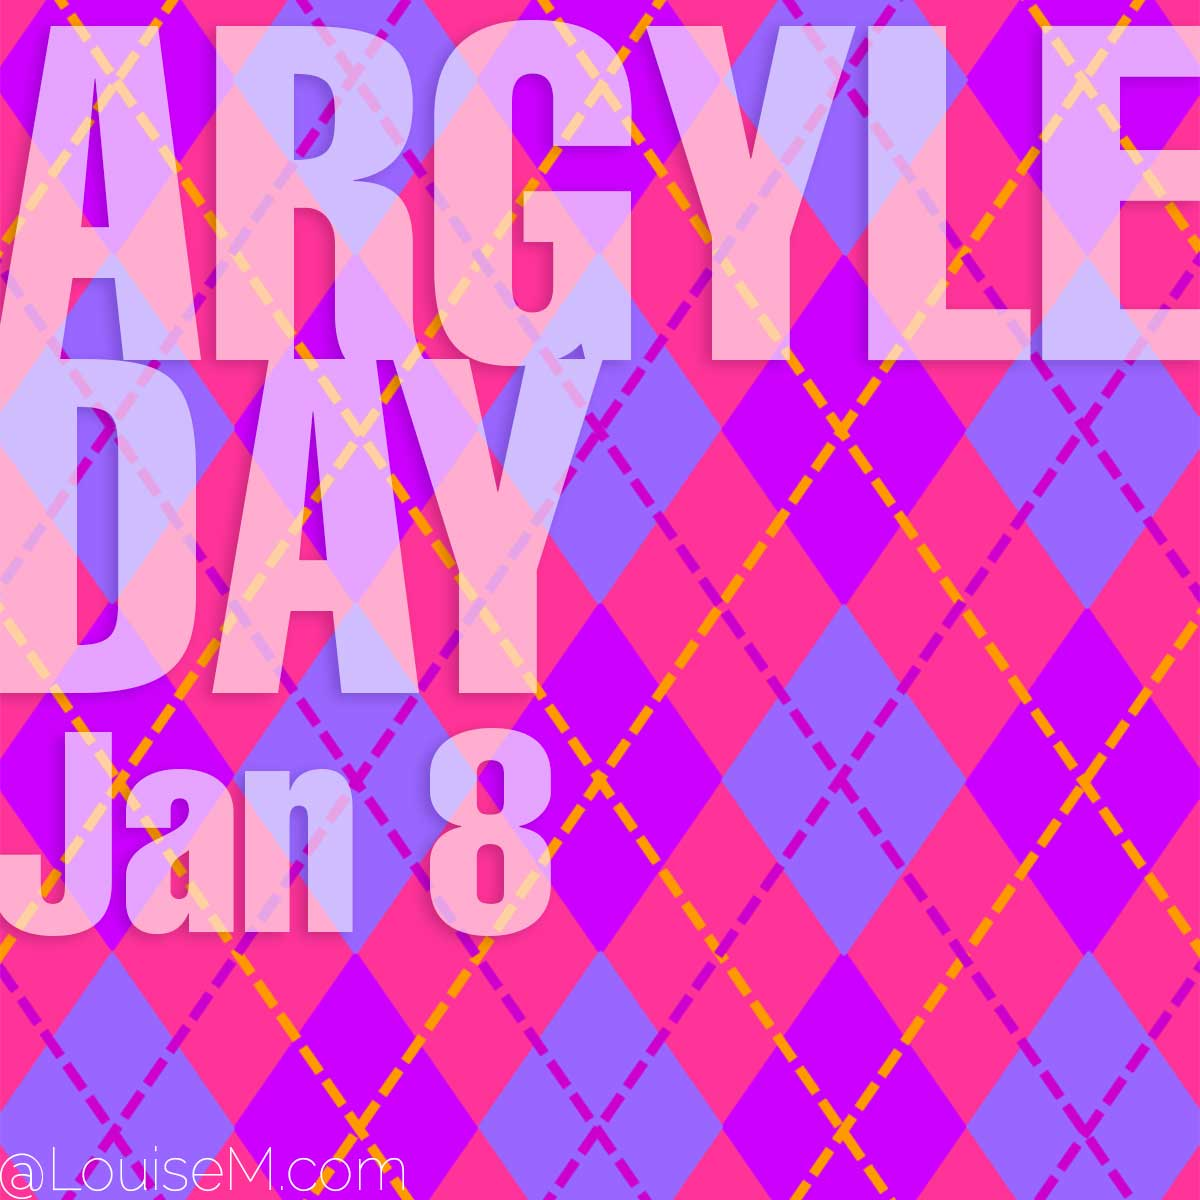 argyle day text on pink purple and blue argyle pattern.